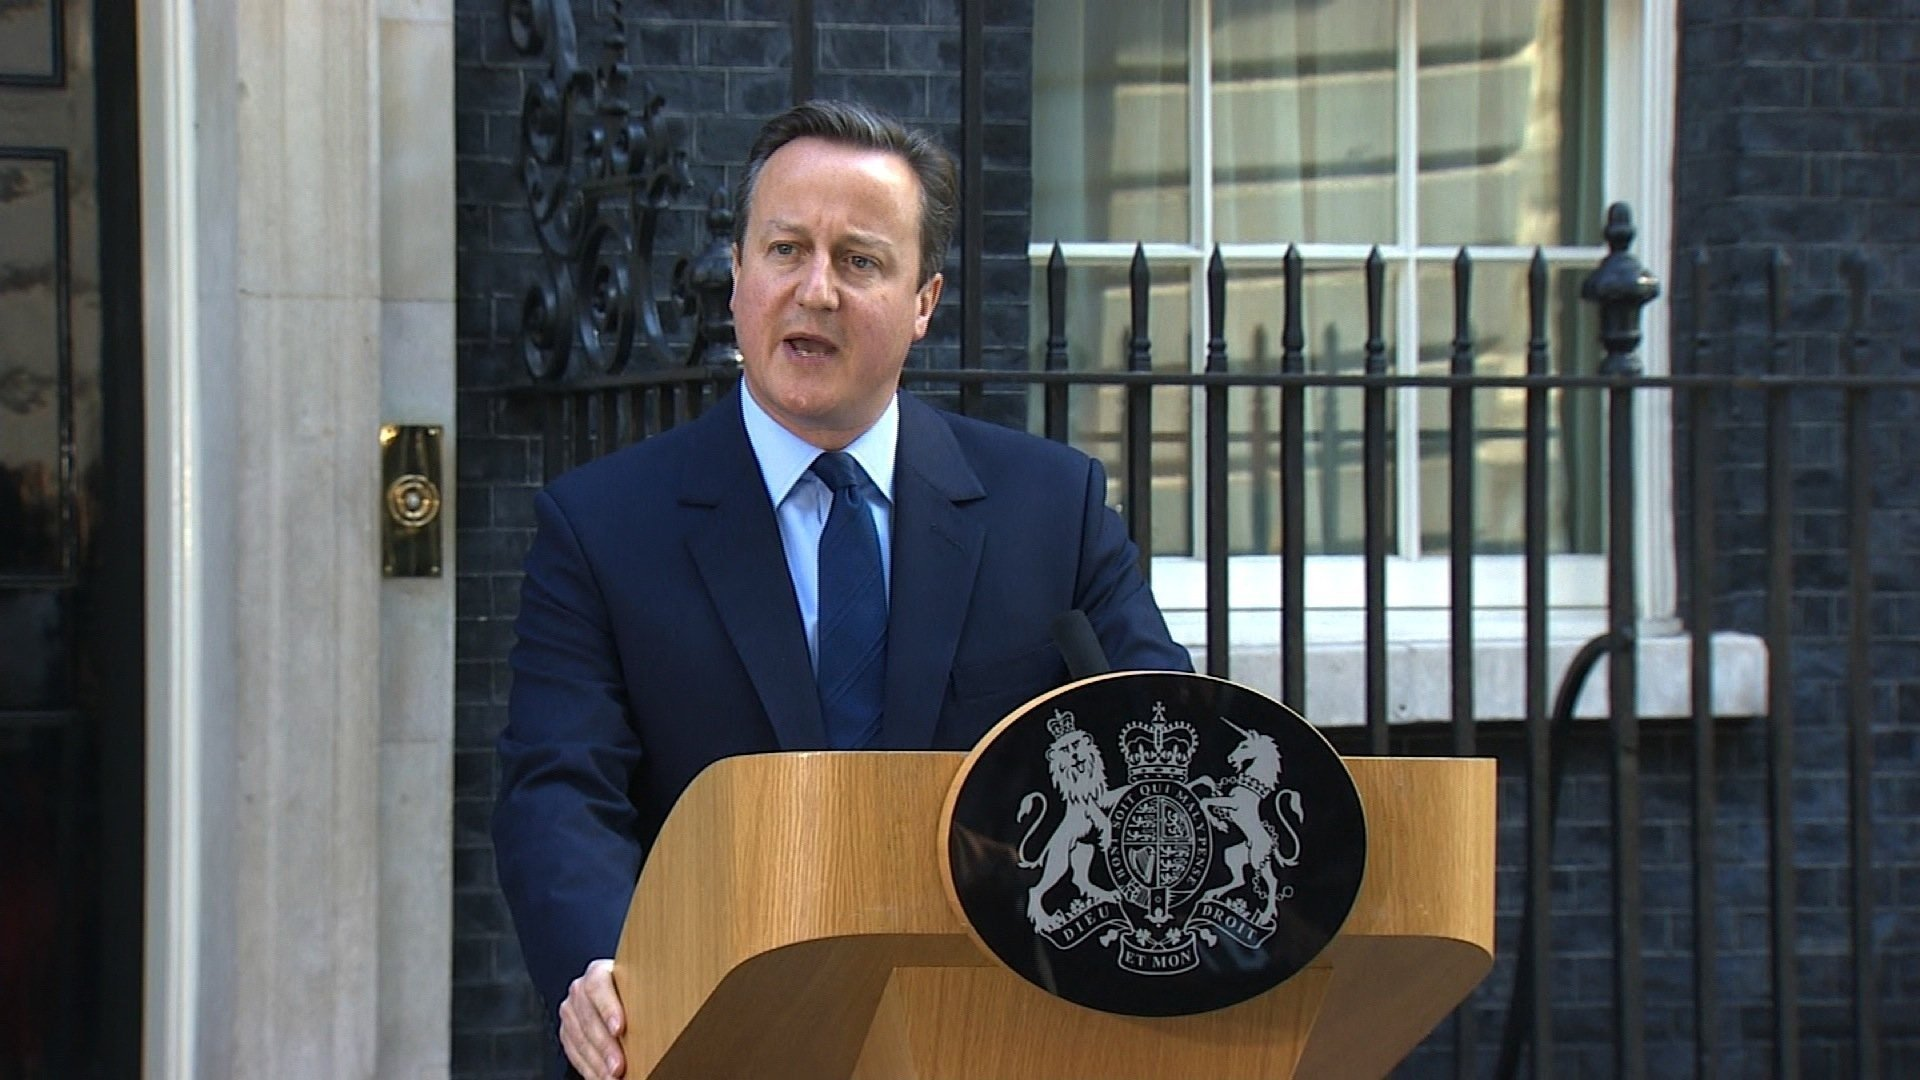 """British Prime Minister David Cameron has announced his resignation after voters in the UK's referendum backed a """"Brexit"""" from the EU."""